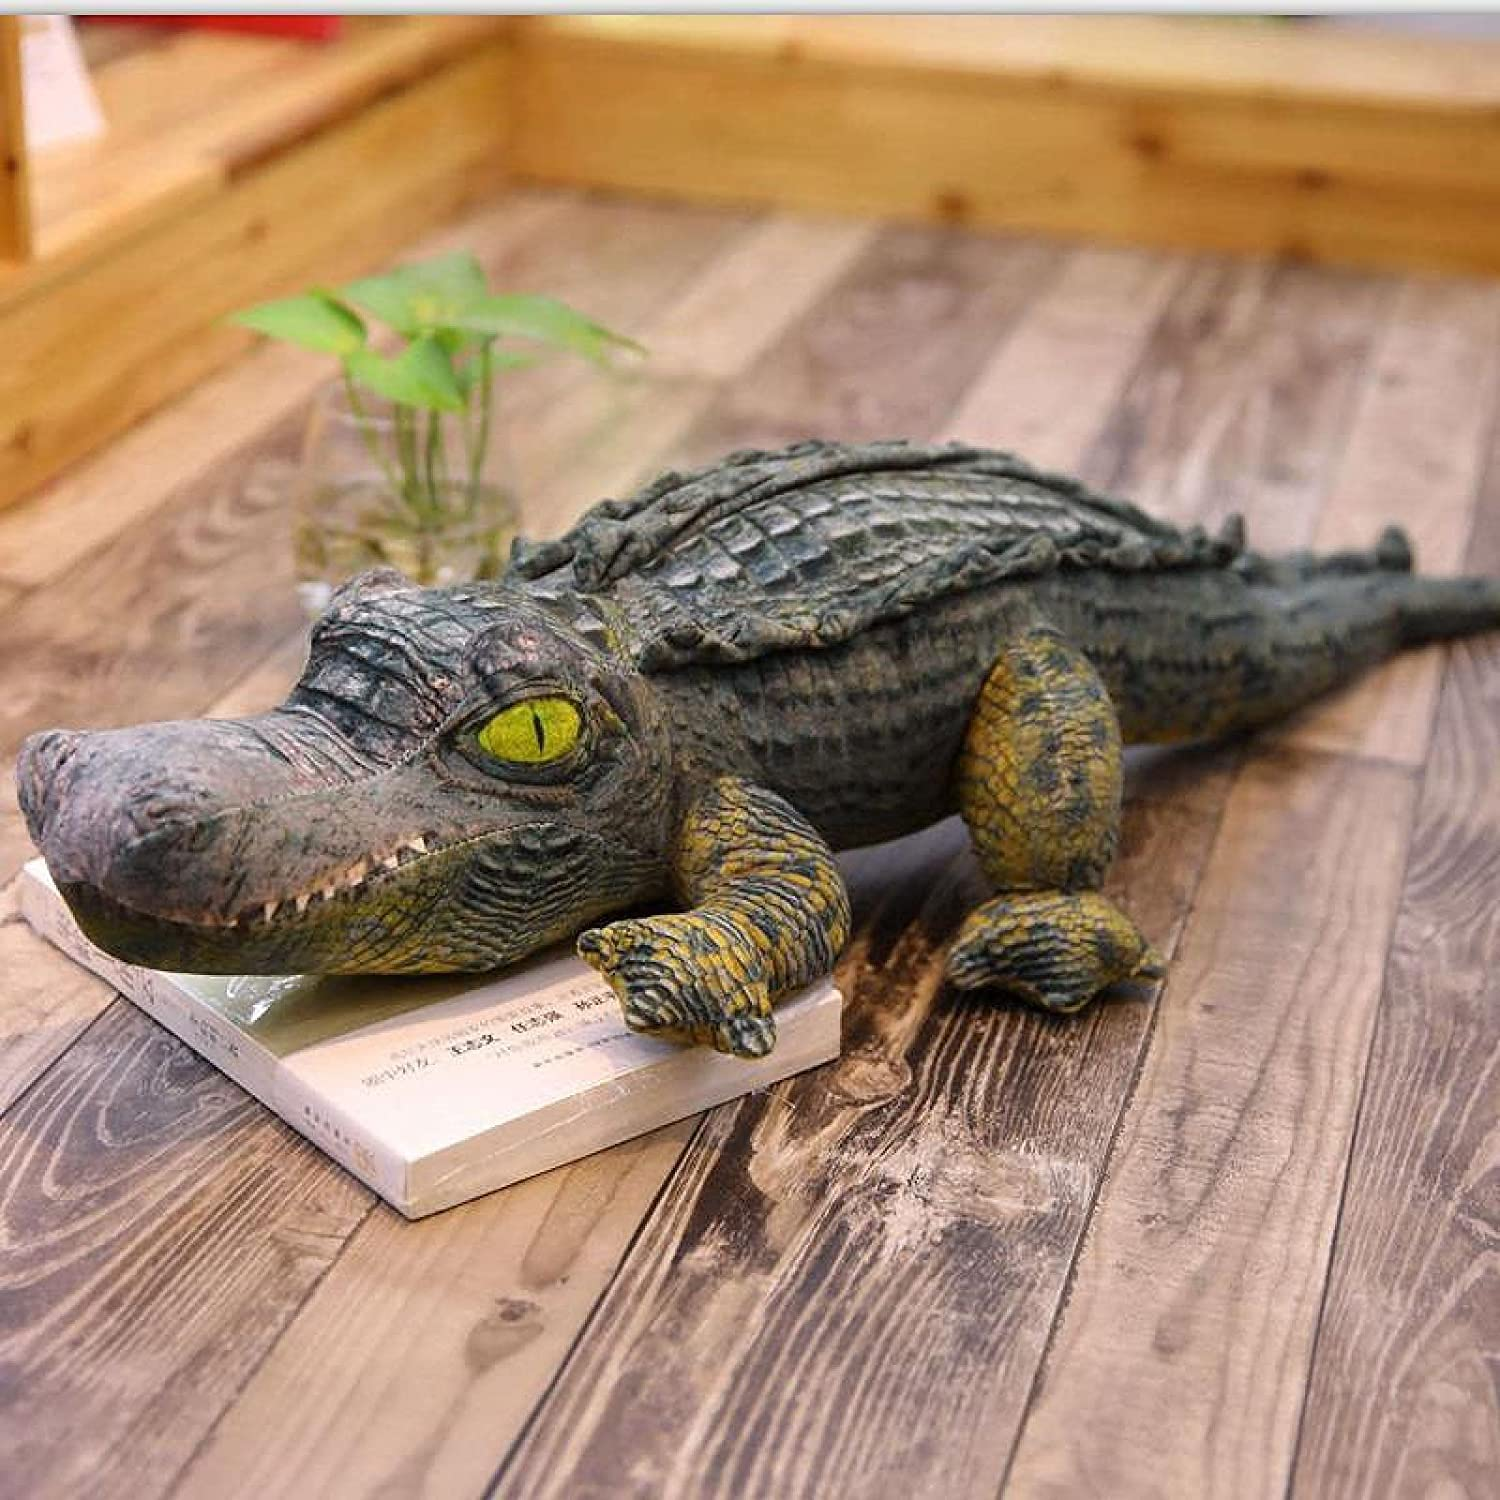 YQHLHT Large San Francisco Mall Soft Recommendation Crocodile Toy Upgrade Cotton Hug Stuffed